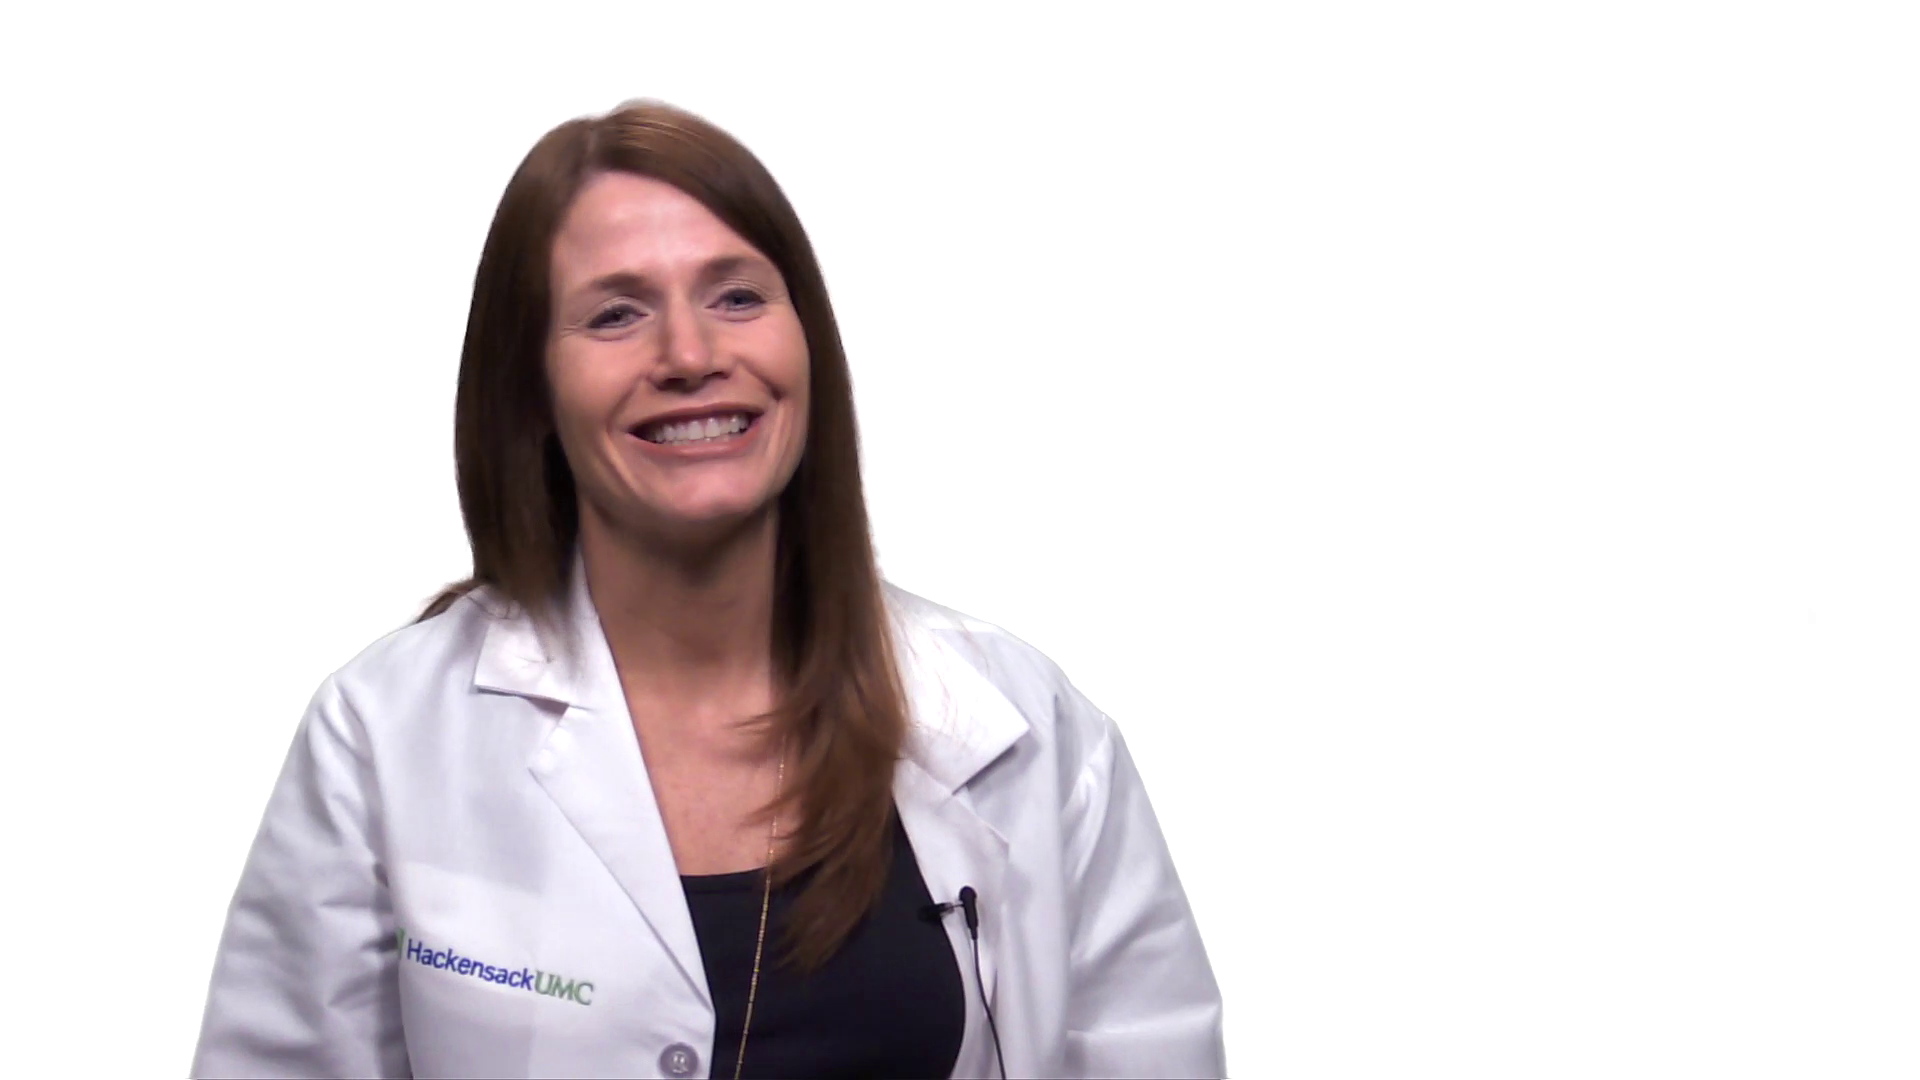 Dr. Hollywood talks about her practice